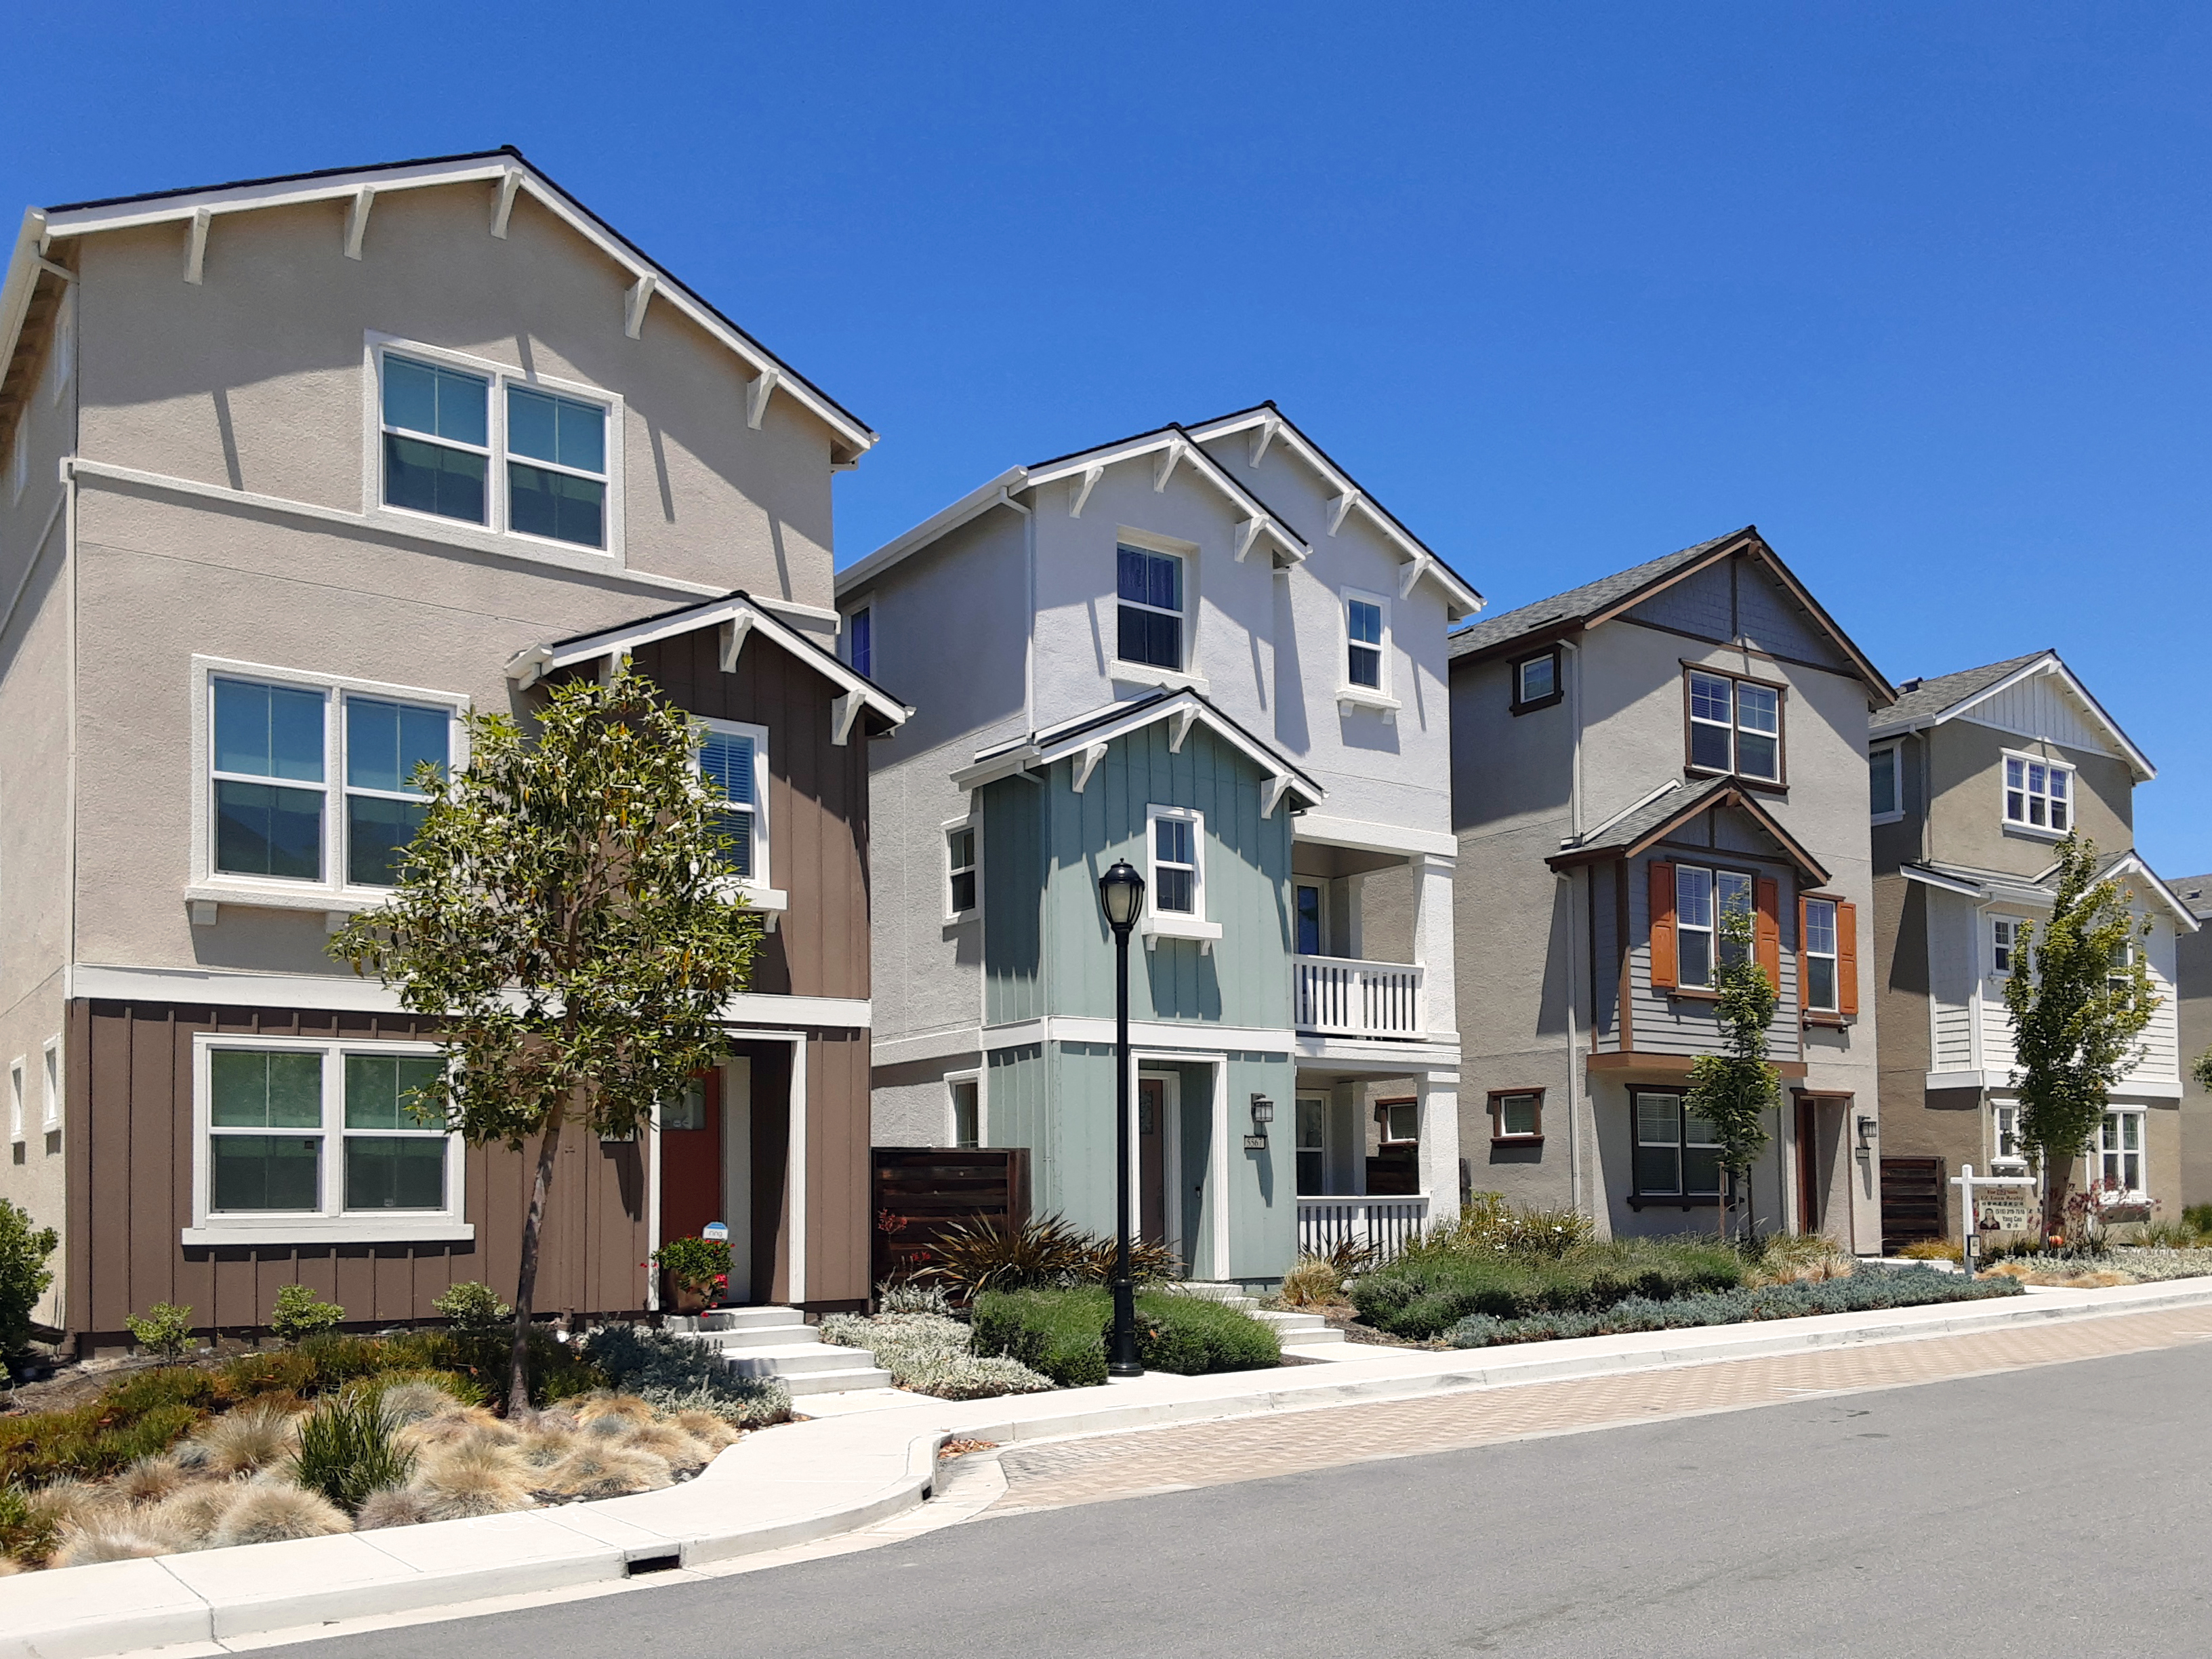 row of completed new construction residential buildings